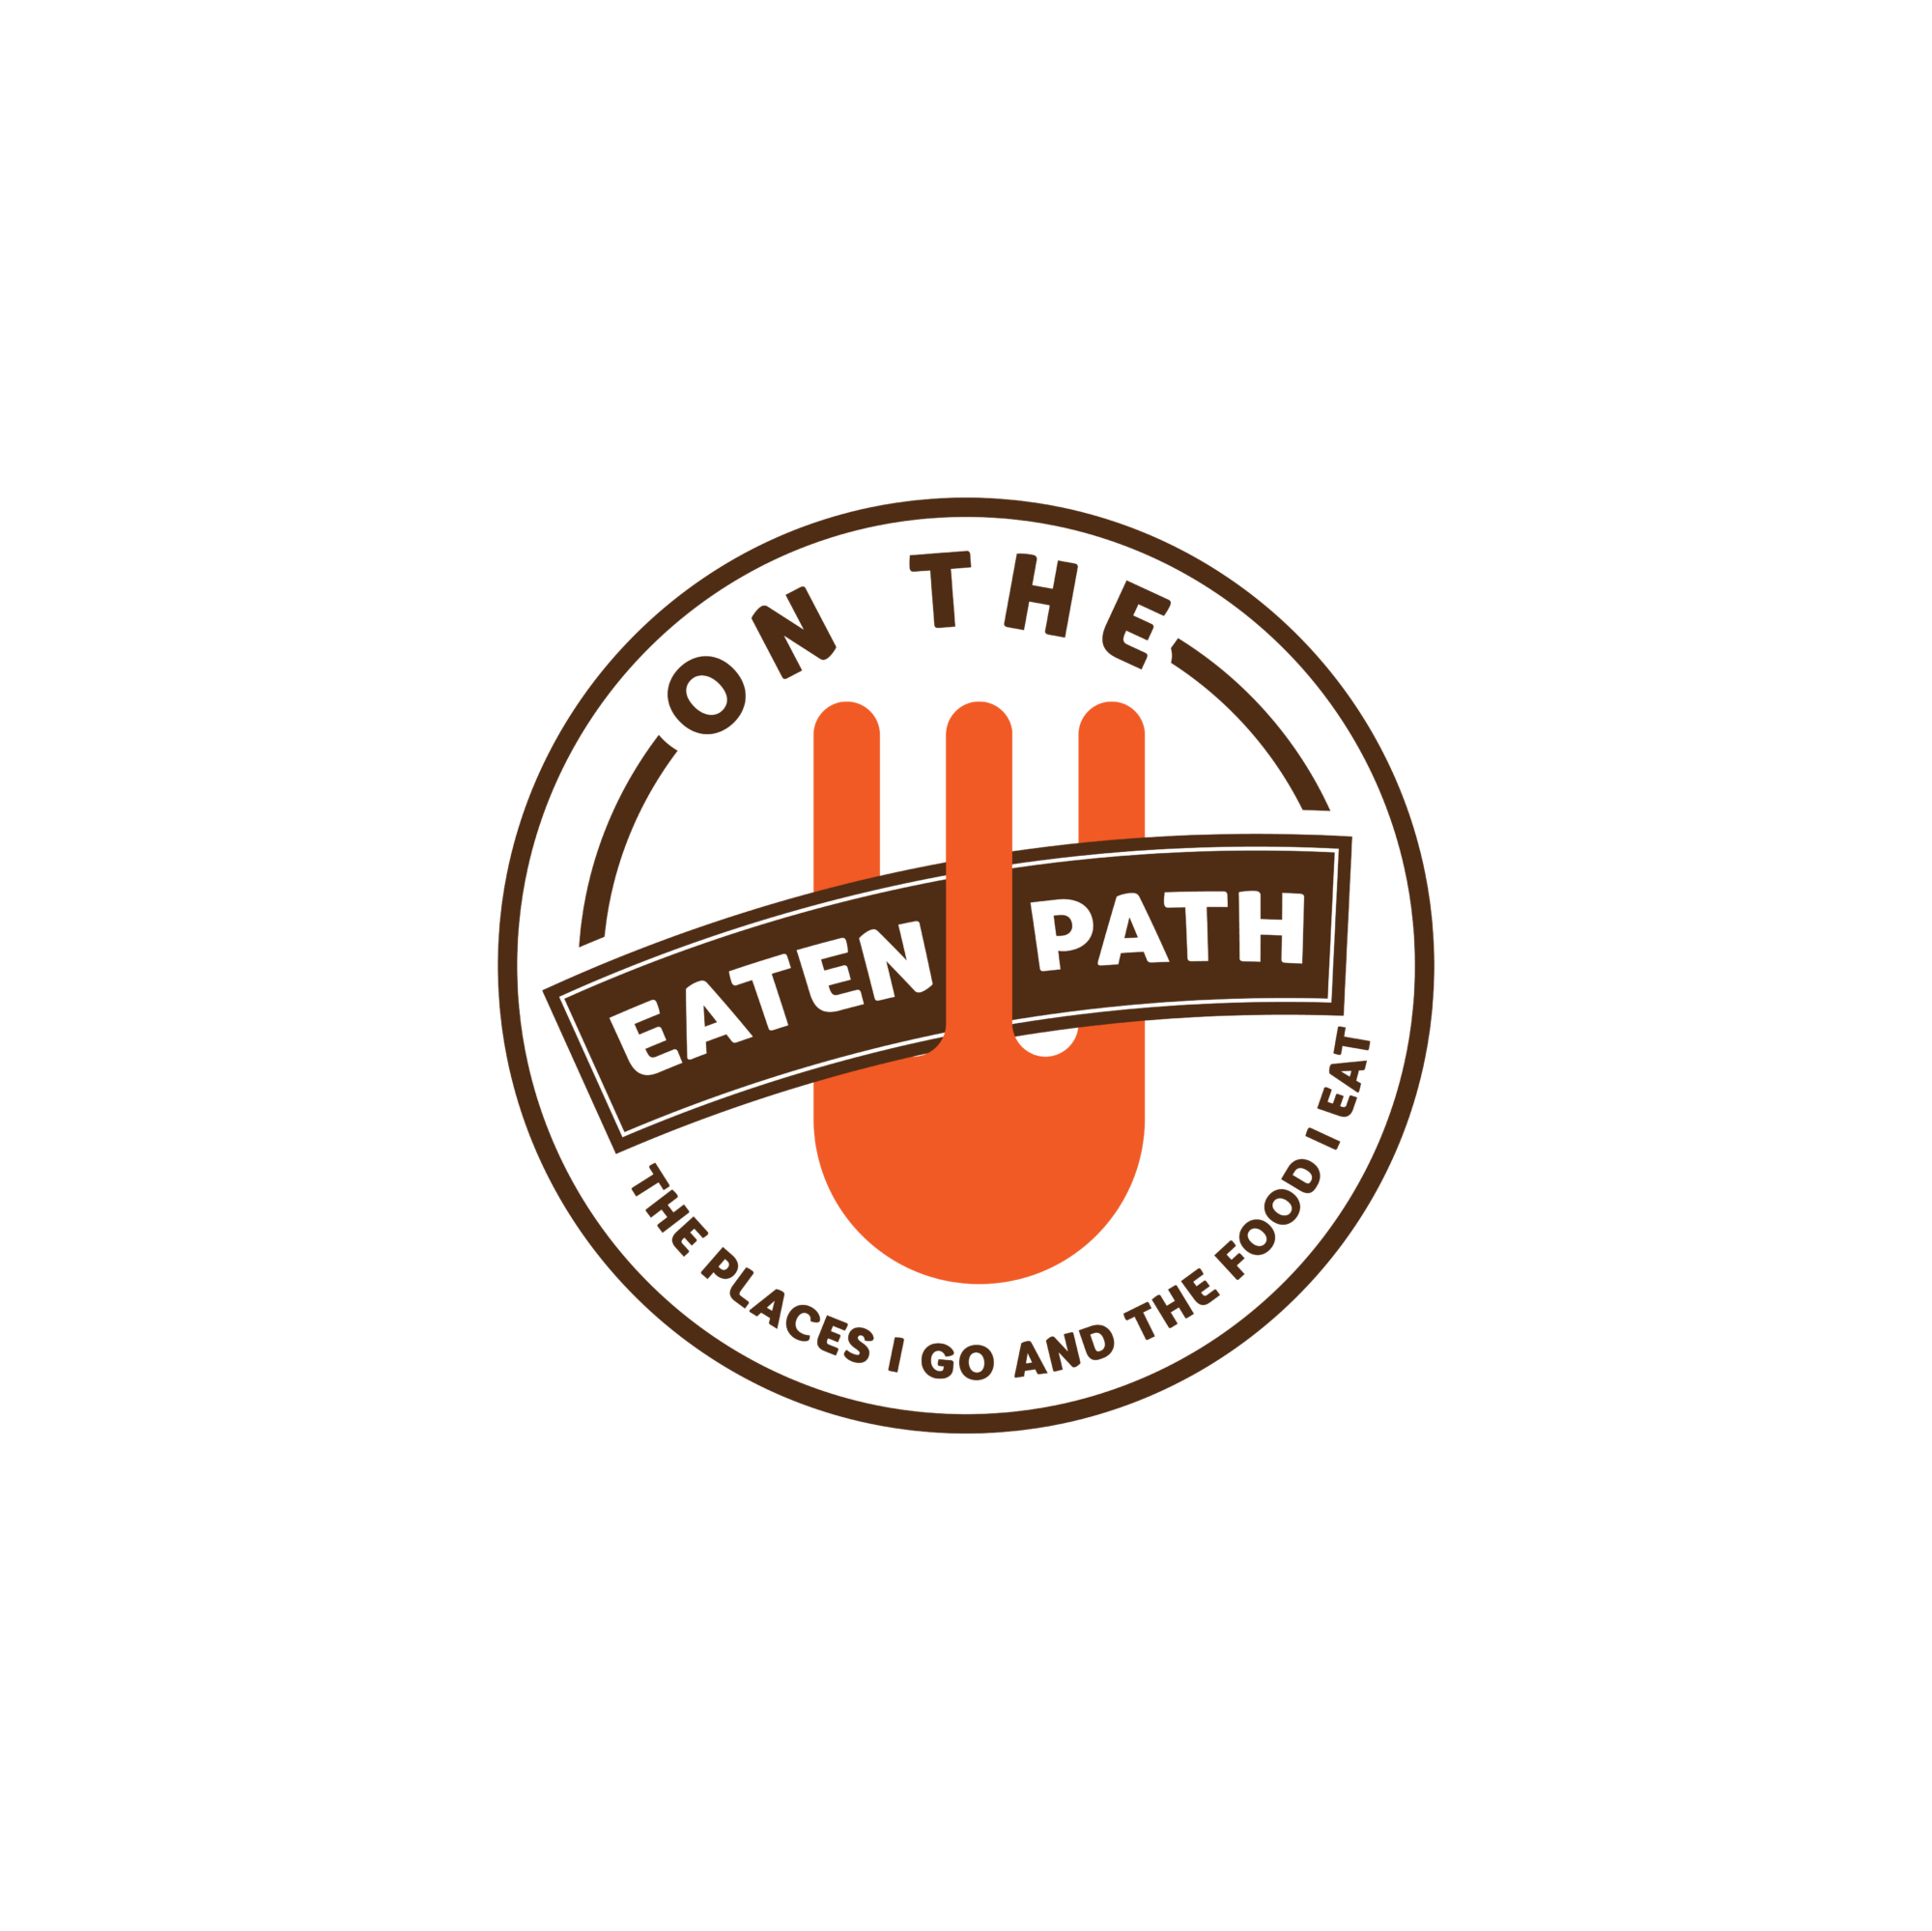 On The Eaten Path